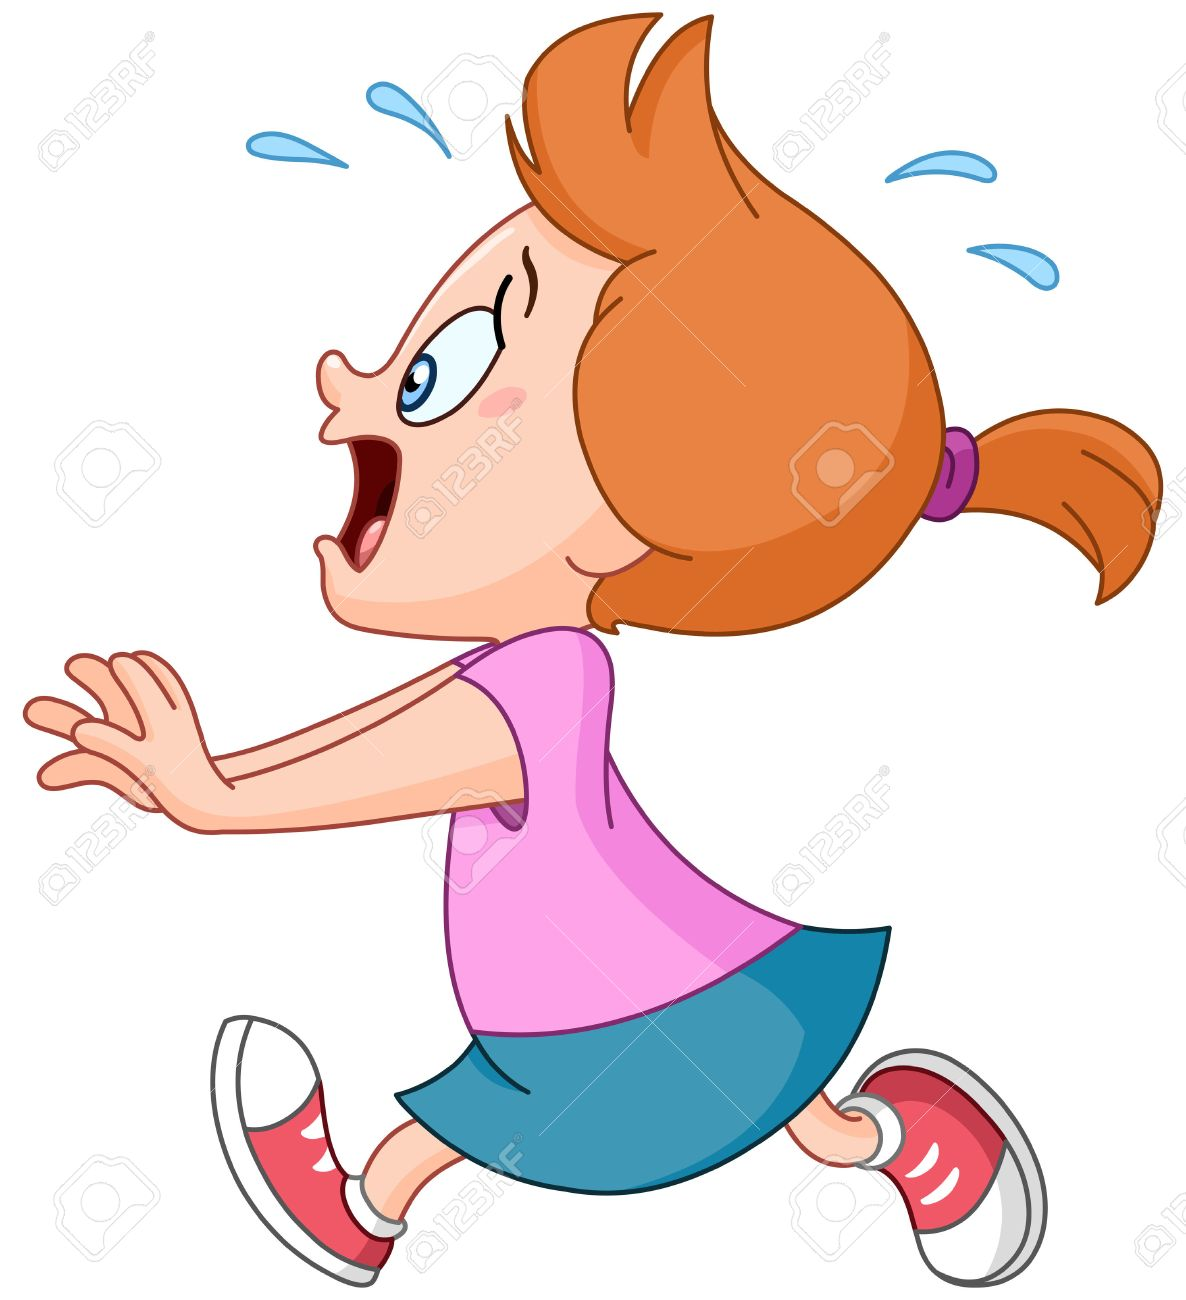 Scared and panicked young girl running.